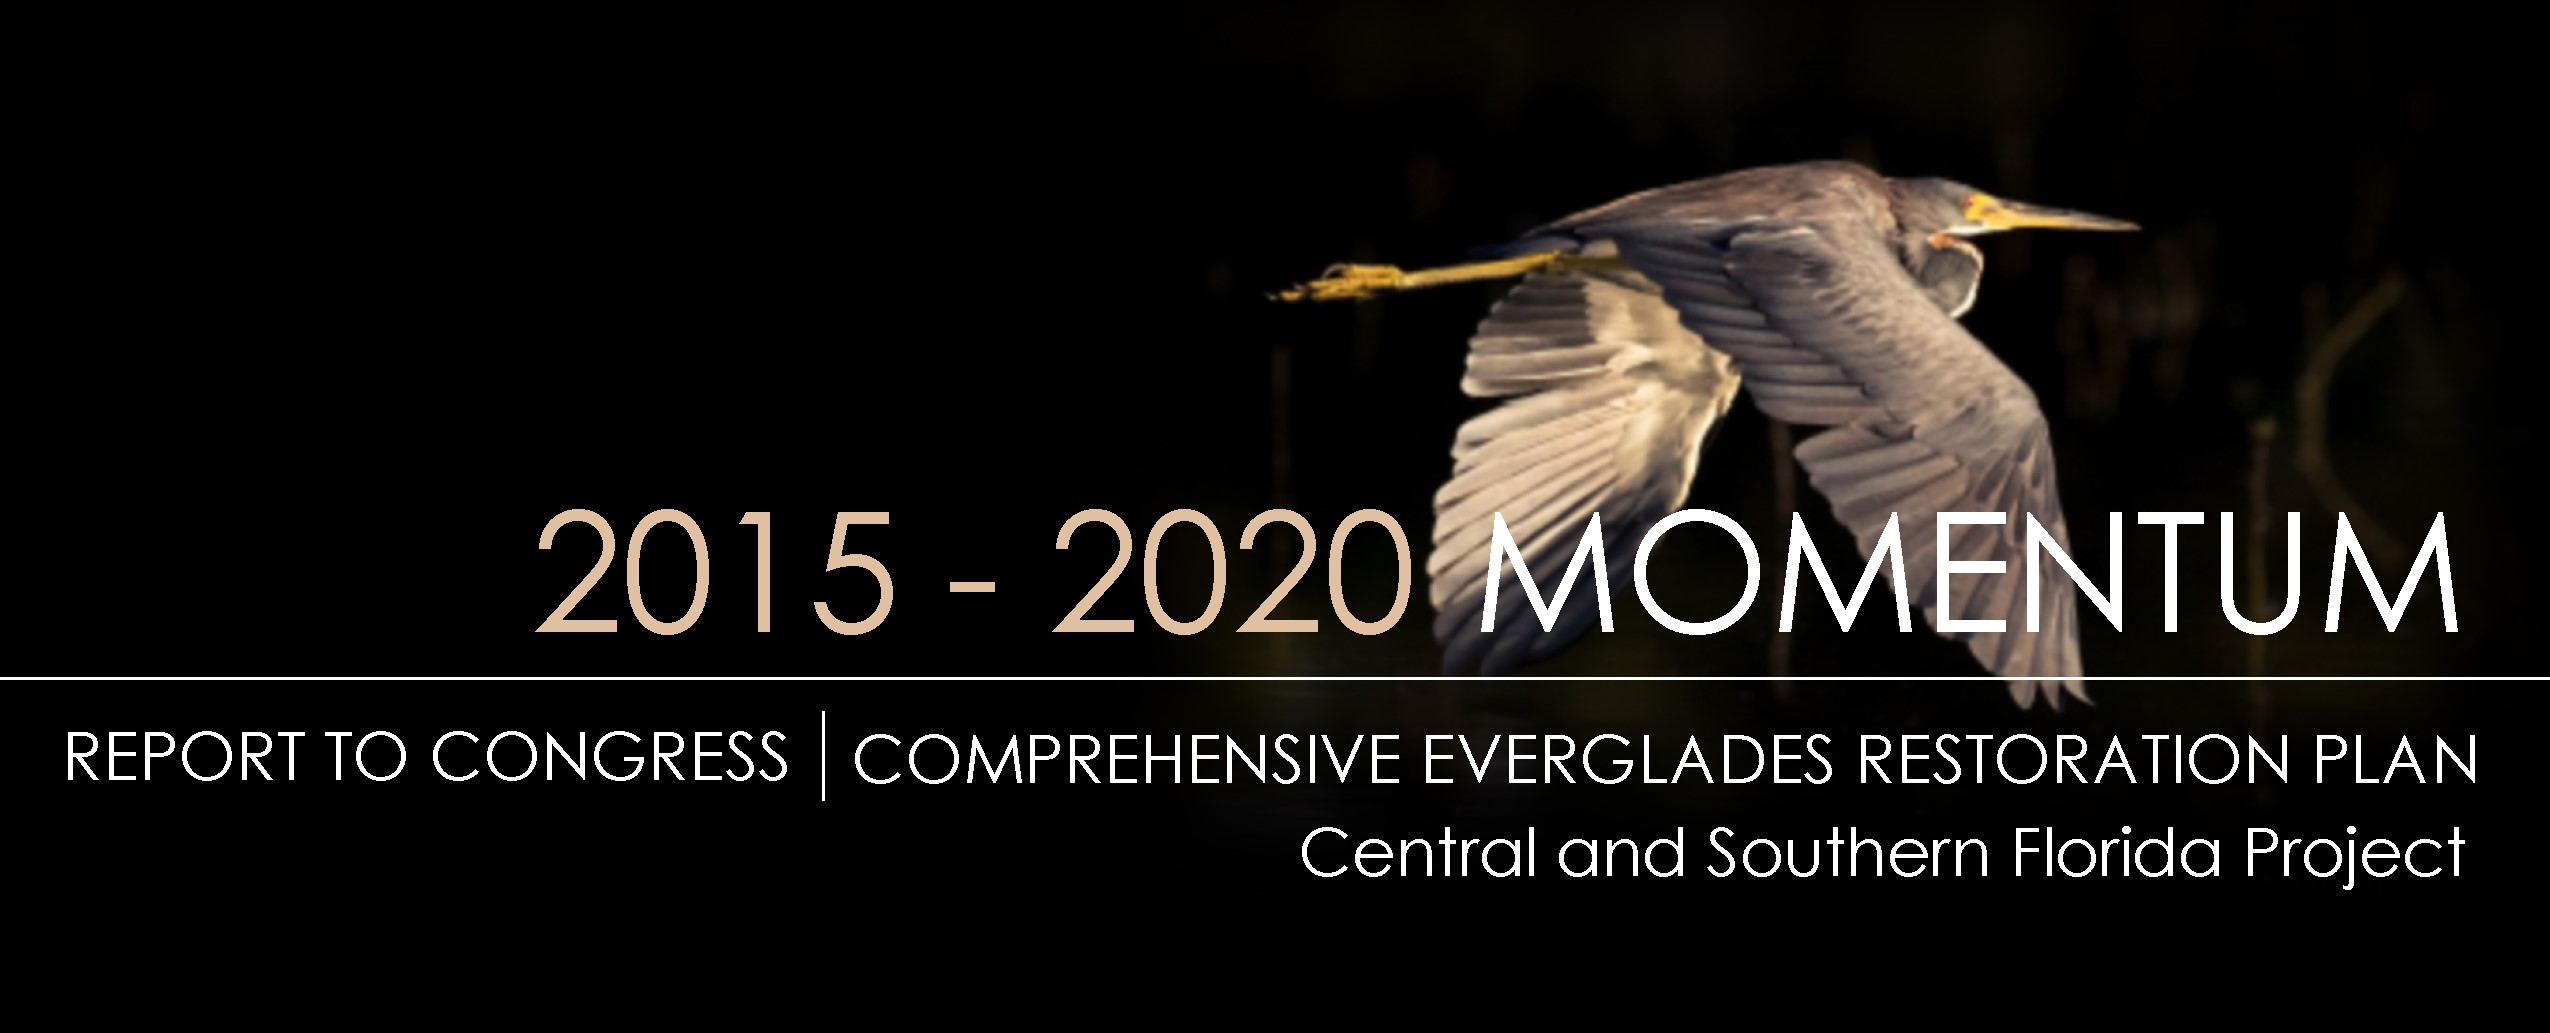 Cover of 2015 - 2020 Momentum Report to Congress - Comprehensive Everglades Restoration Plan - Central and Southern Florida Project